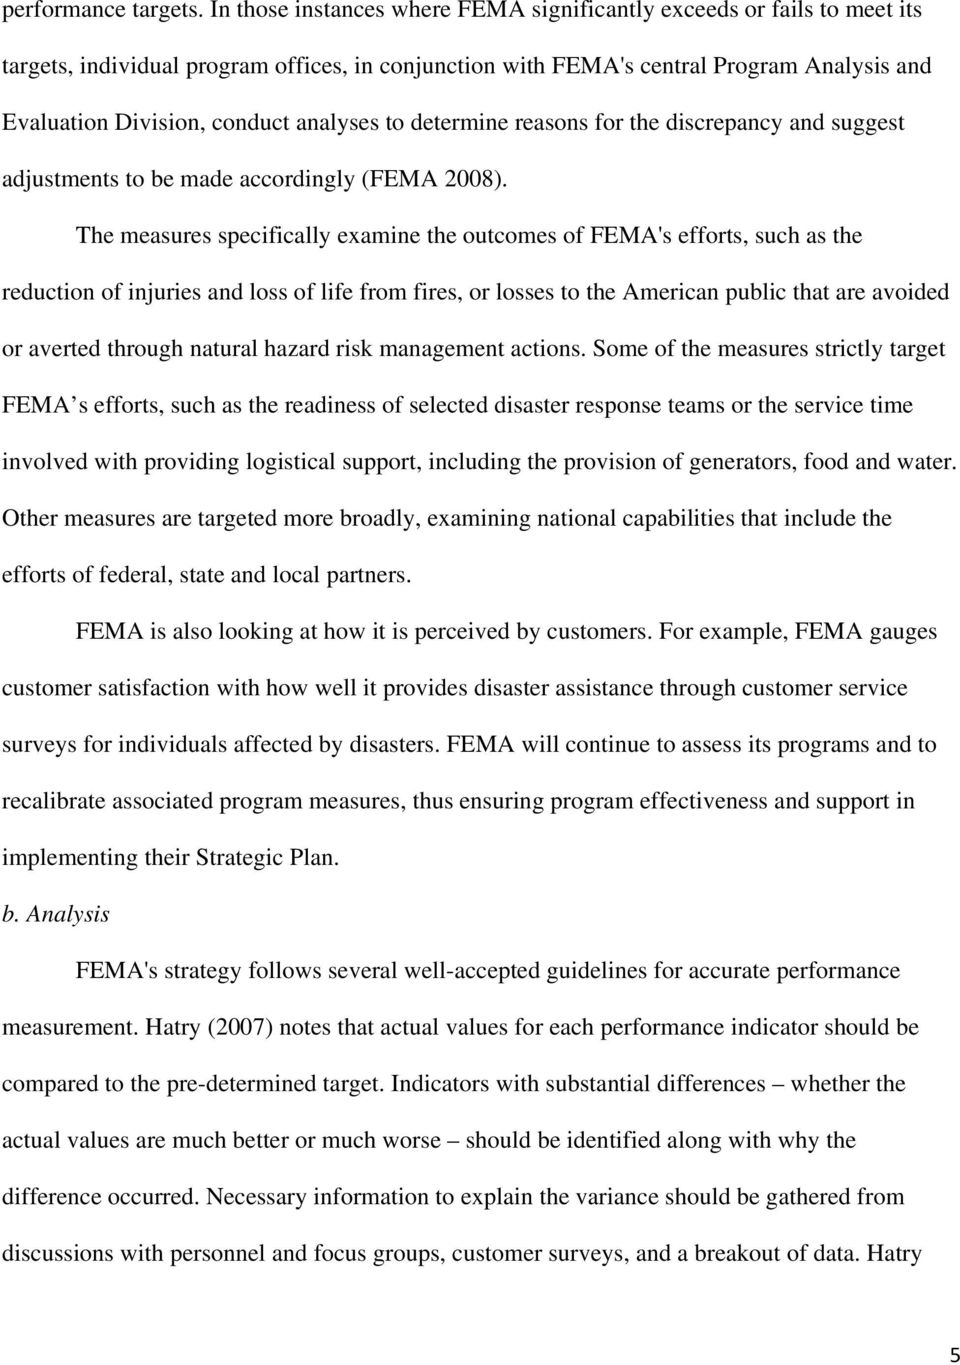 analyses to determine reasons for the discrepancy and suggest adjustments to be made accordingly (FEMA 2008).